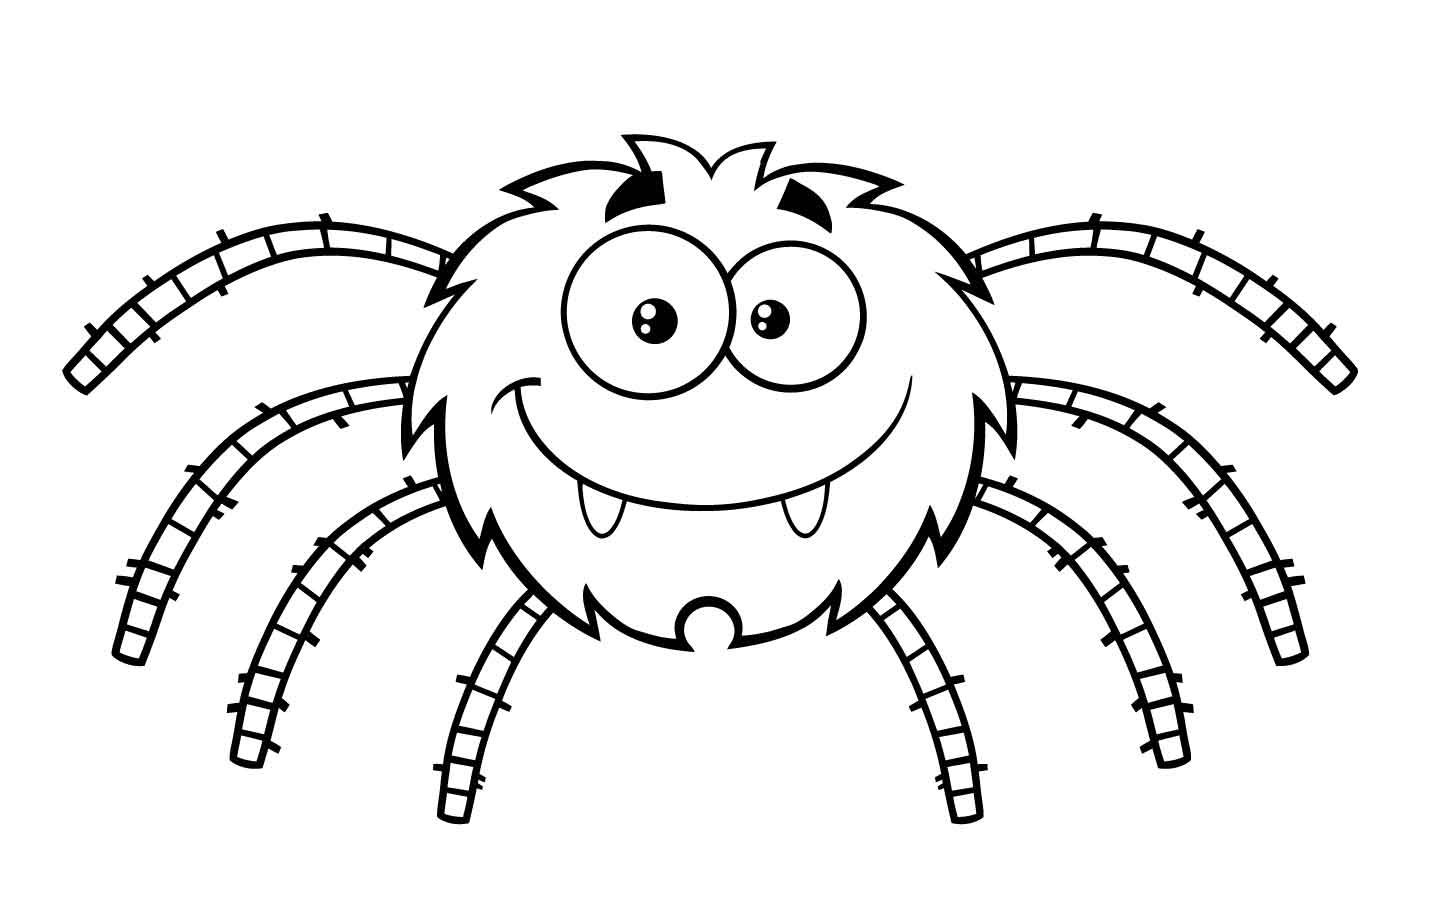 coloring printable spiders spider coloring pages to download and print for free coloring spiders printable